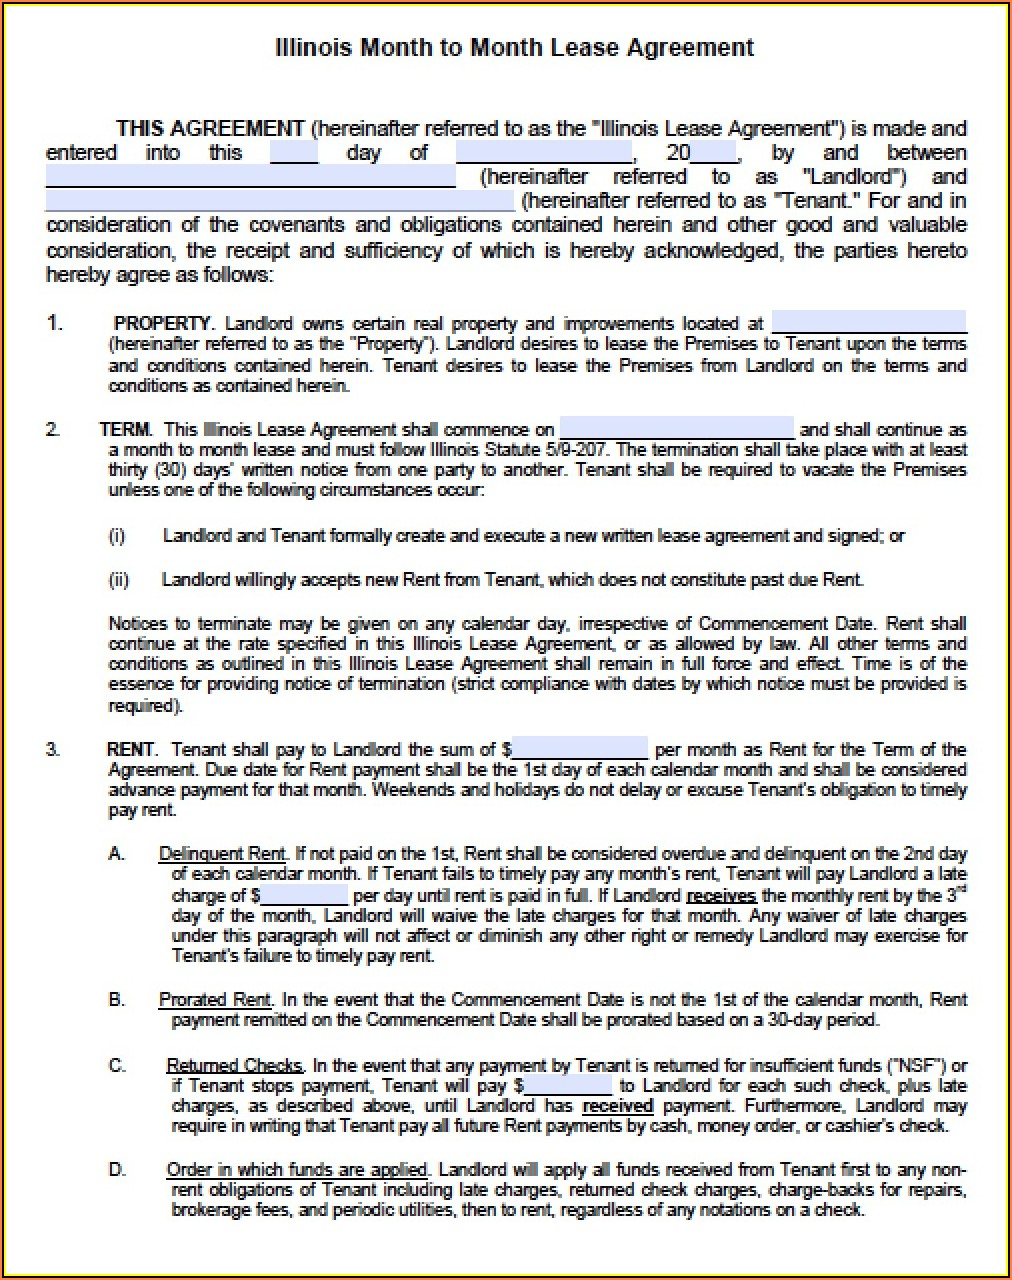 Standard Chicago Apartment Lease Form